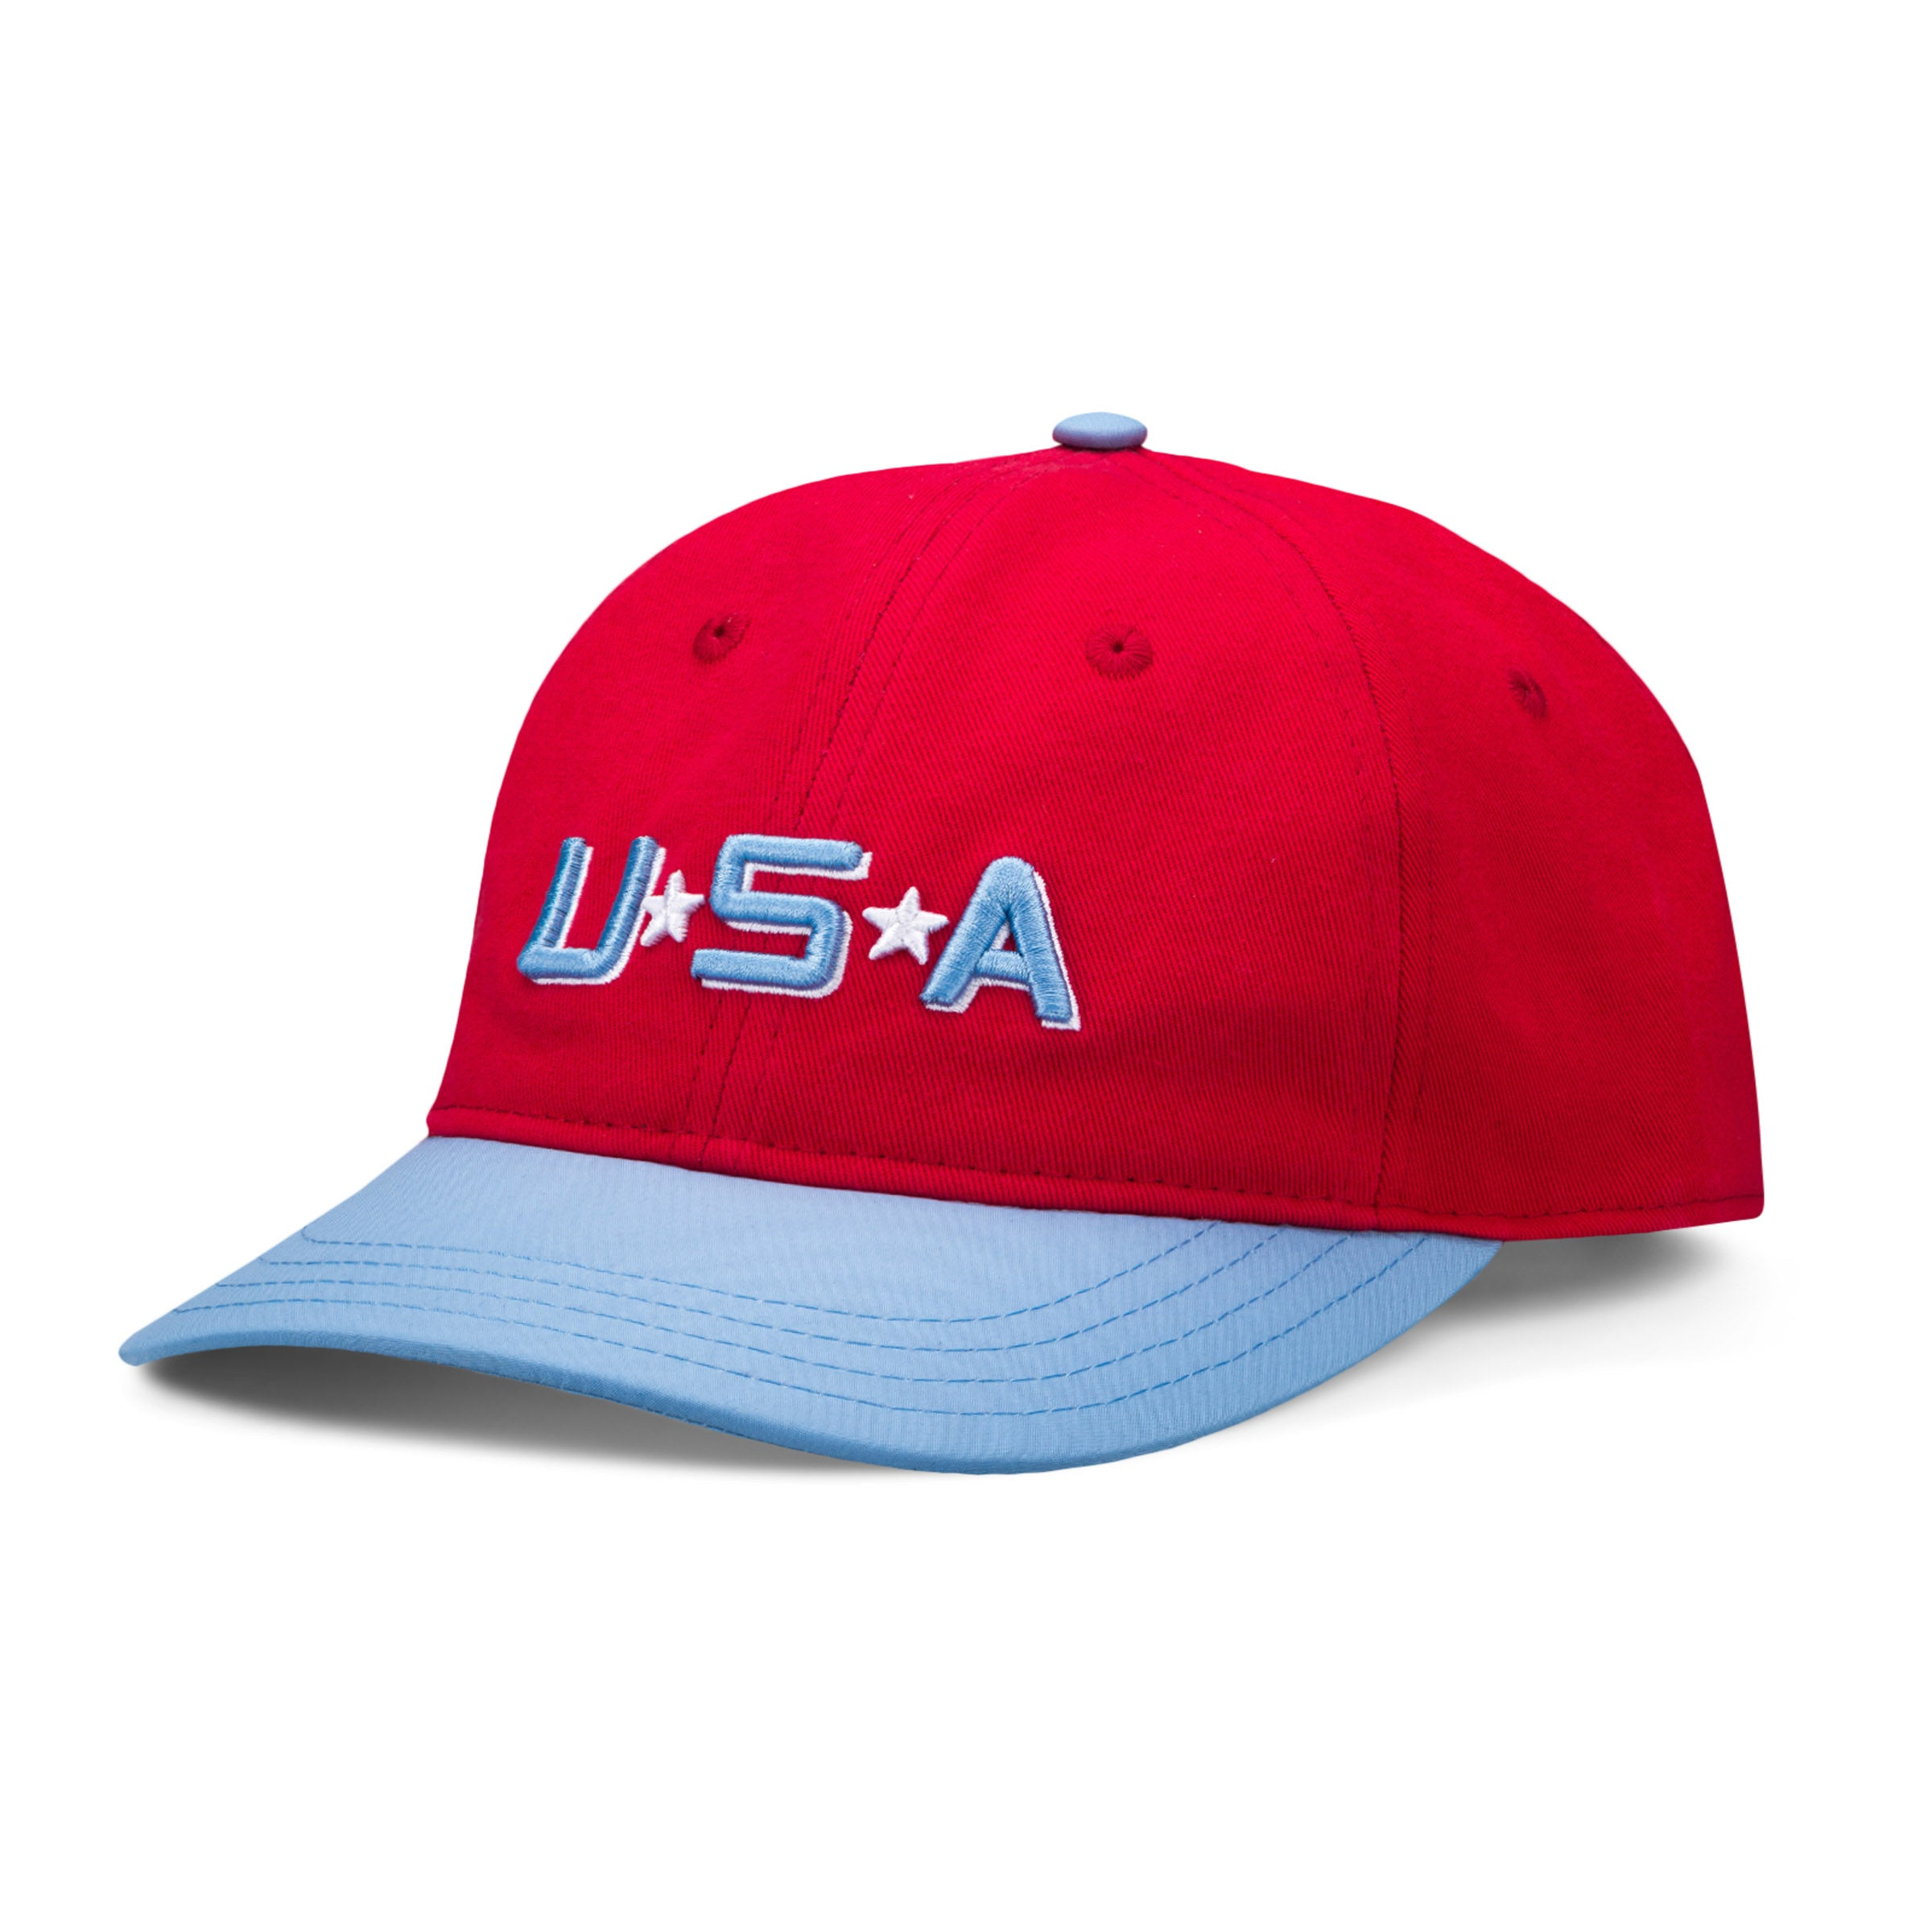 reputable site fa2d6 72f38 D2 Mighty Ducks Team USA Snapback Hat